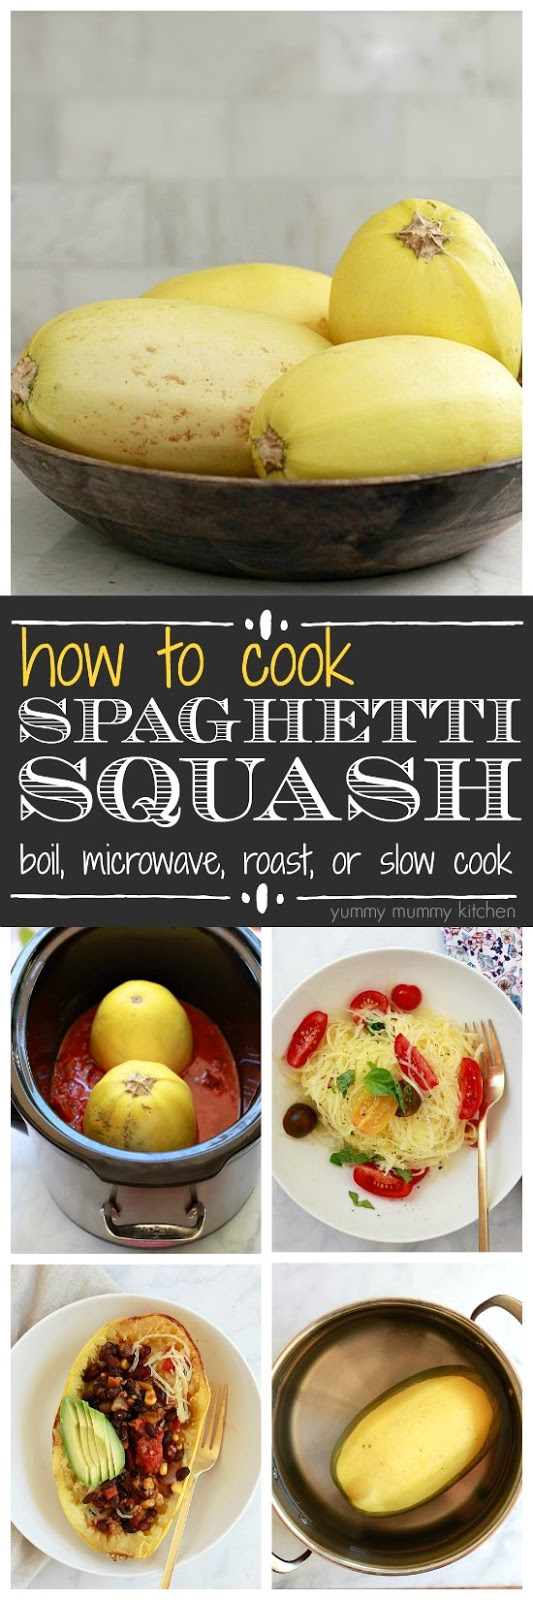 The BEST ways to cook spaghetti squash. Spaghetti squash is easy to make in oven, slow cooker, microwave, or boiled on the stove.